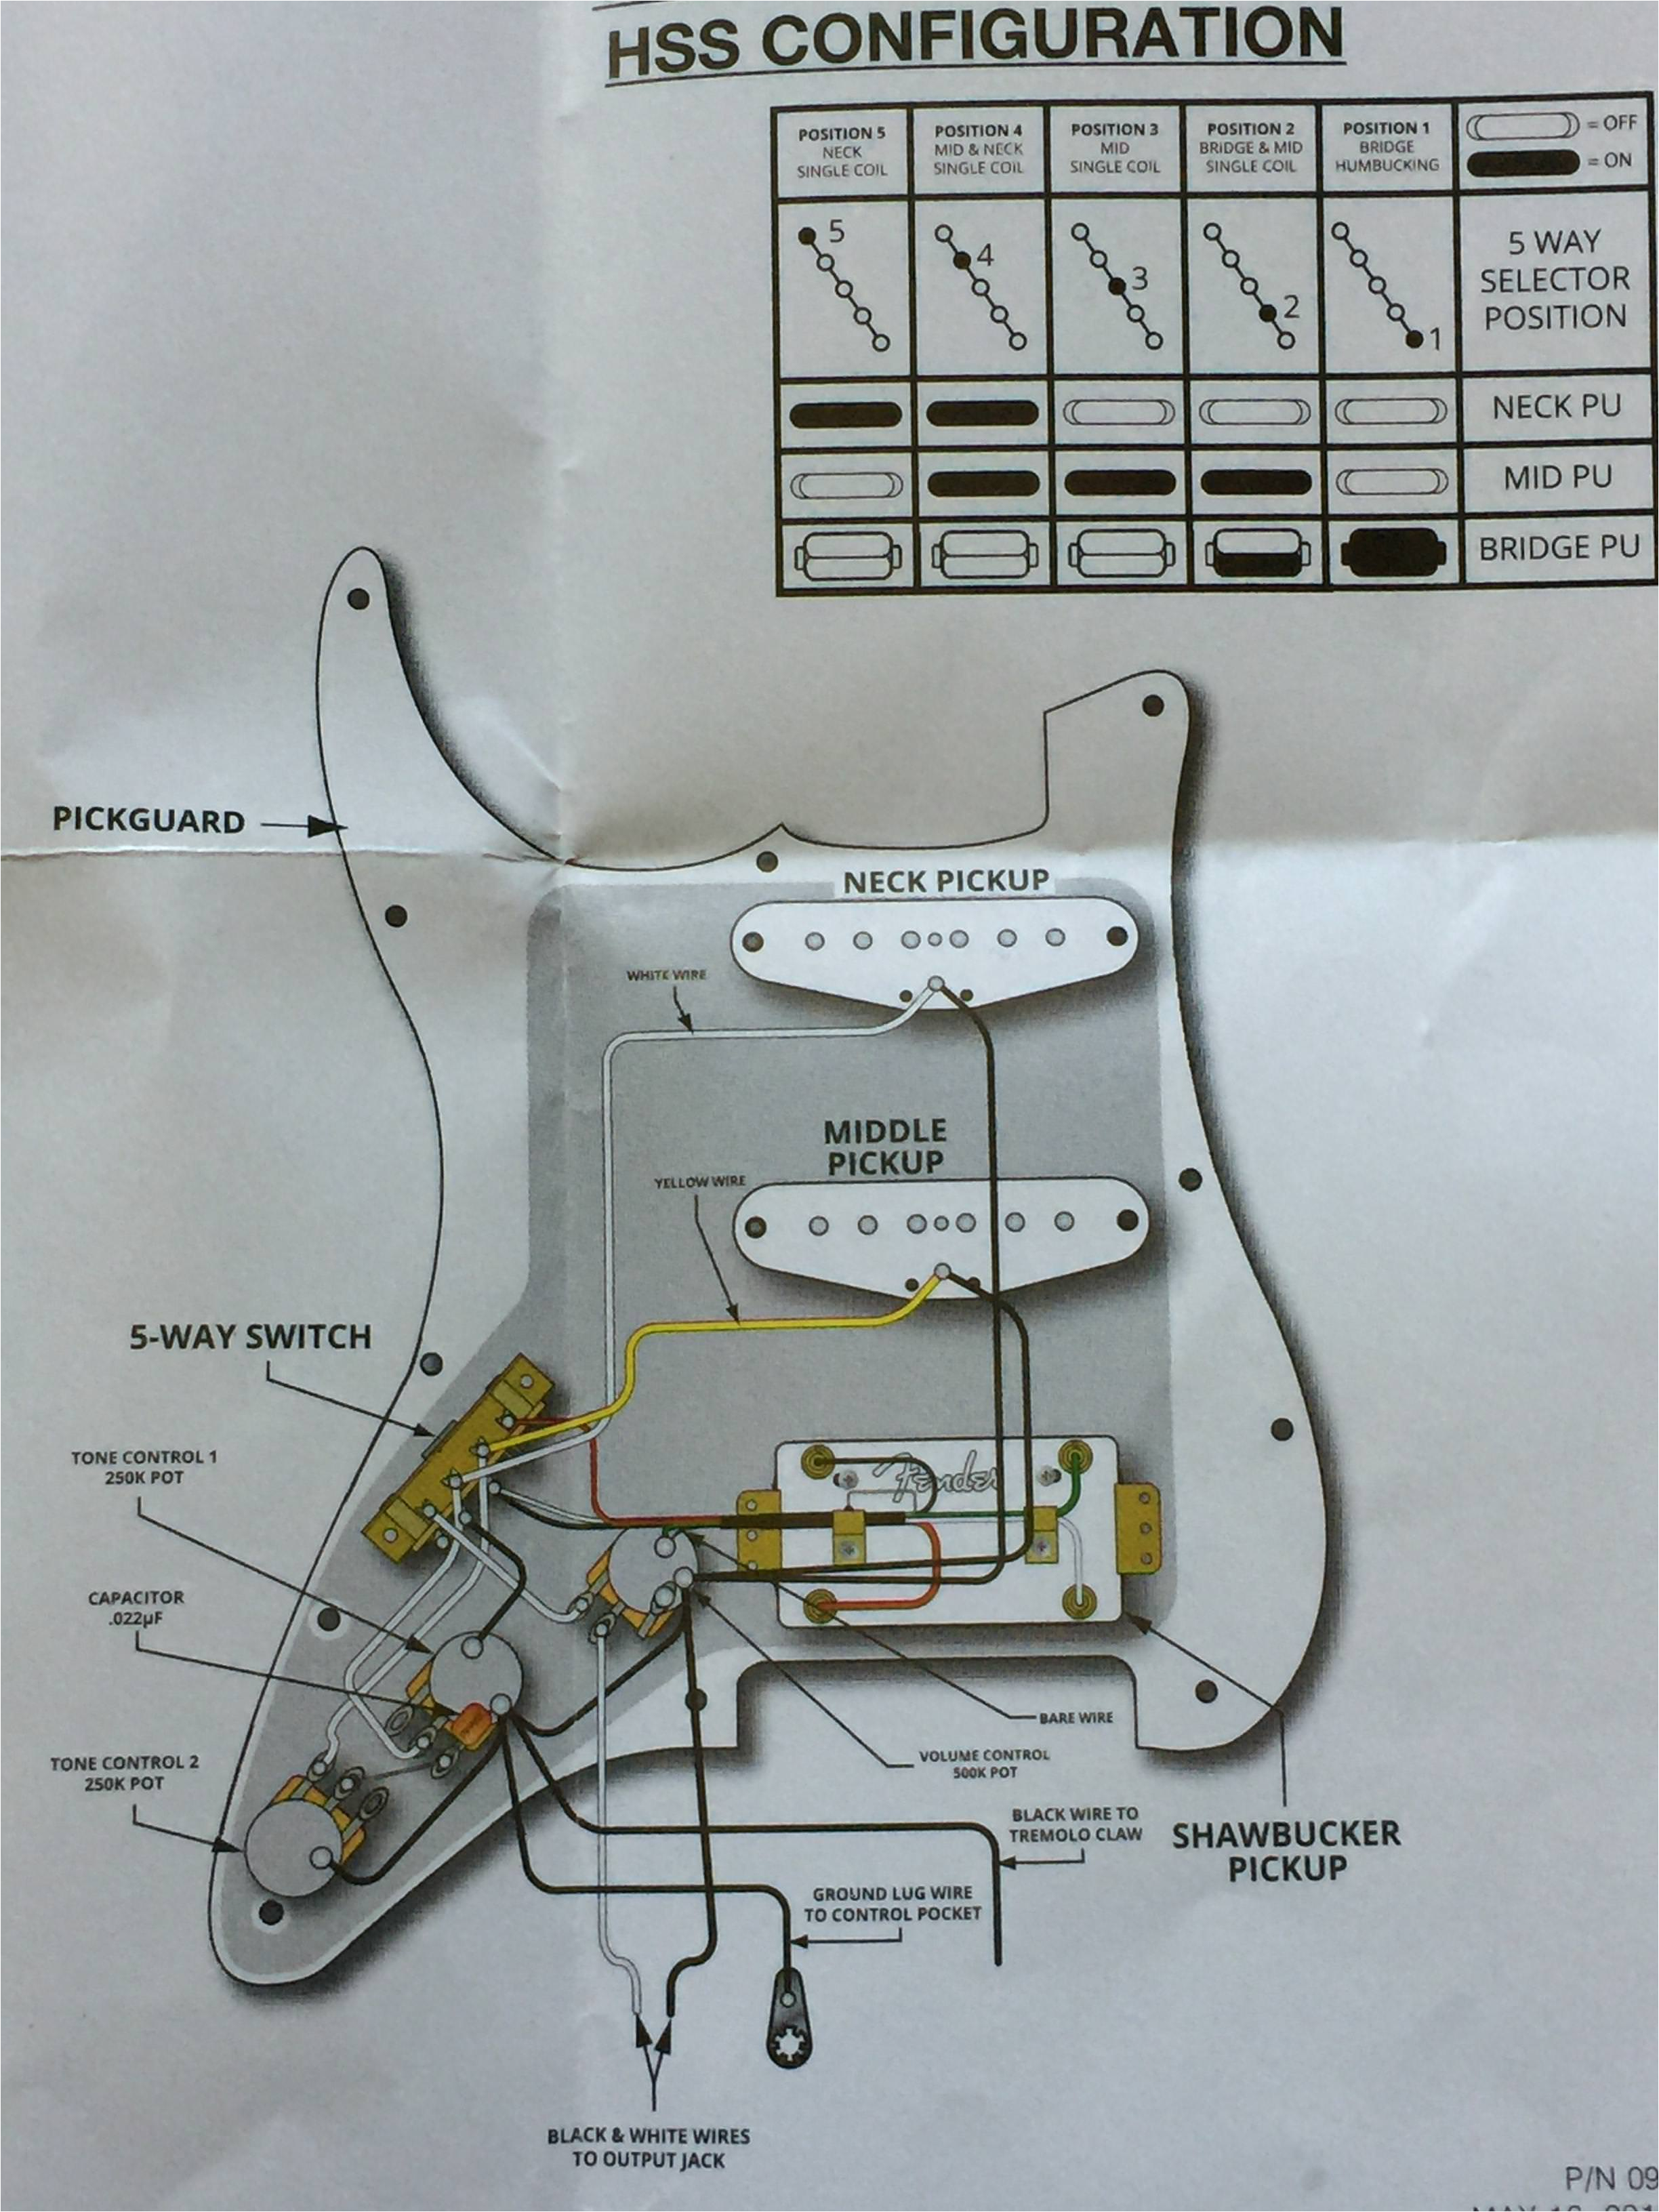 fender wiring harness diagram experience of wiring diagram fender stratocaster wiring harness diagram wiring diagrams recent